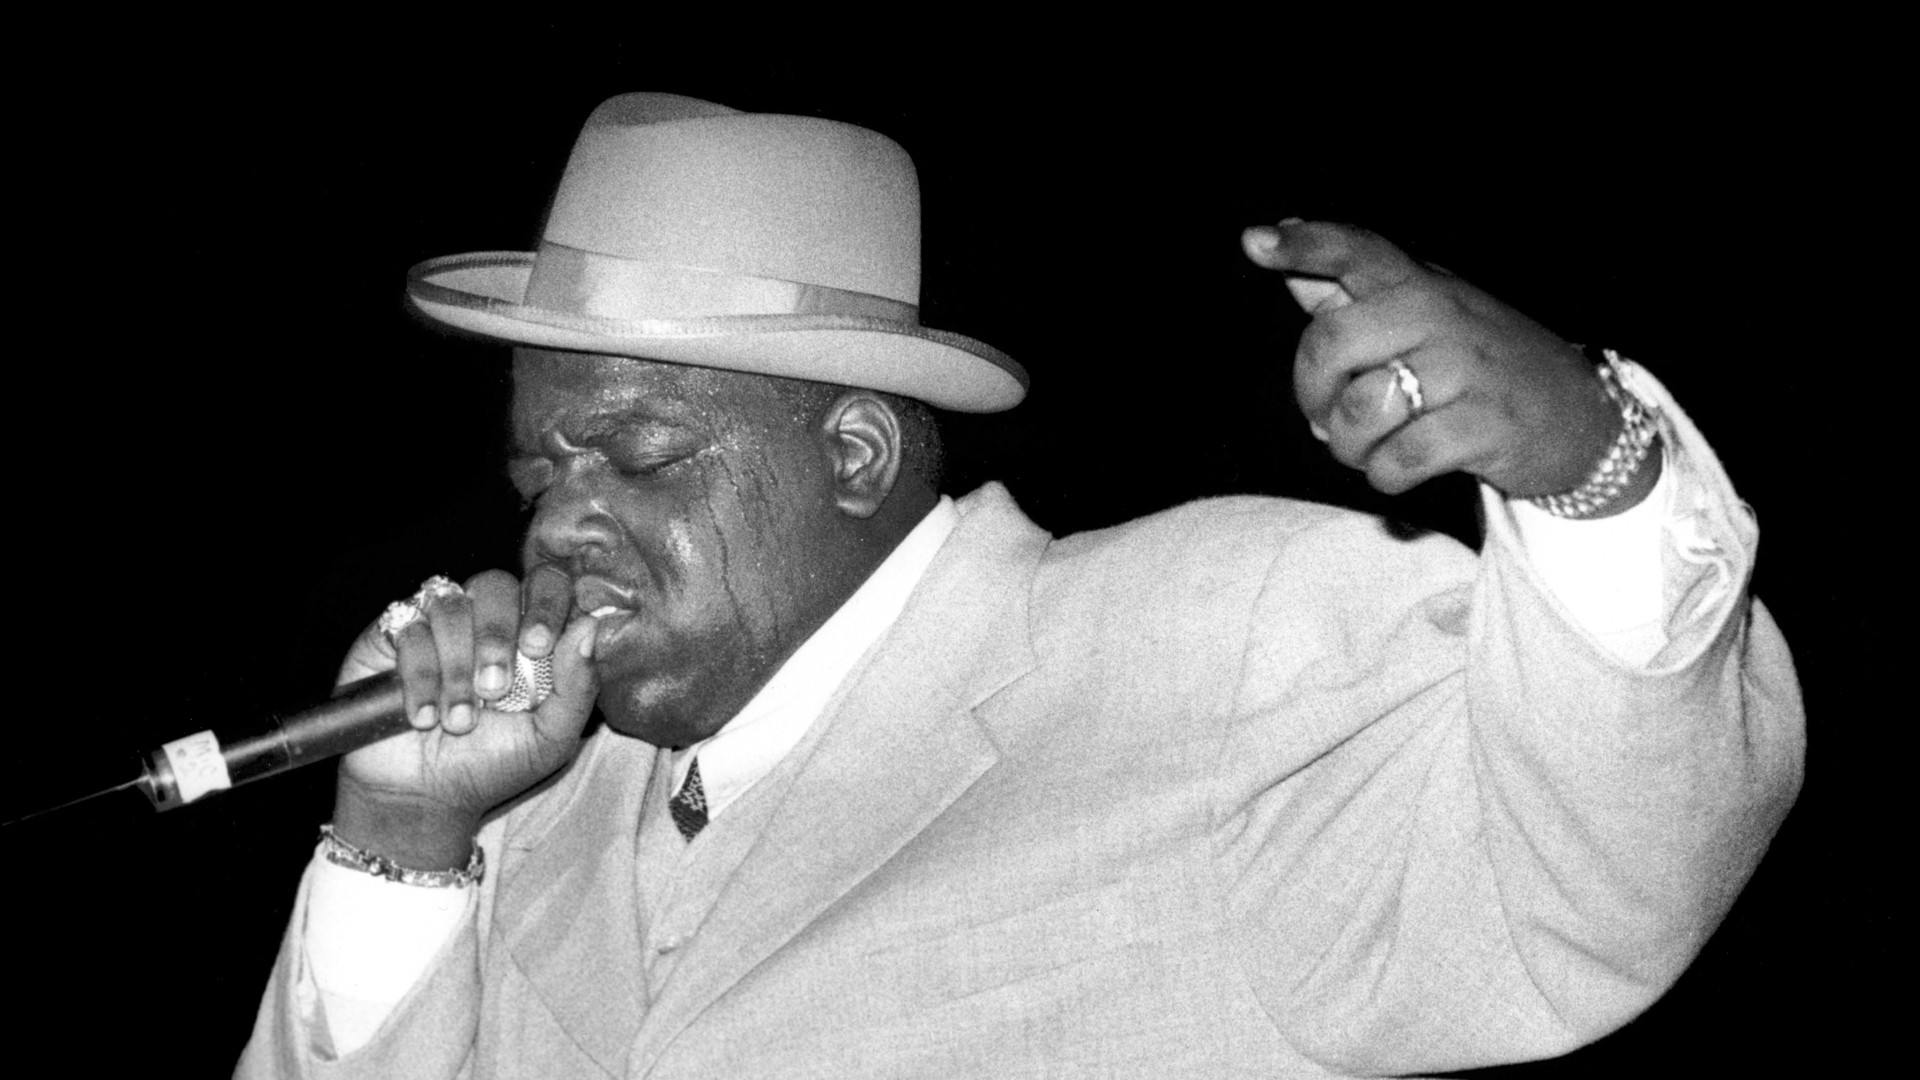 Thinking Big: The Grit and Glamour of the Notorious B.I.G.